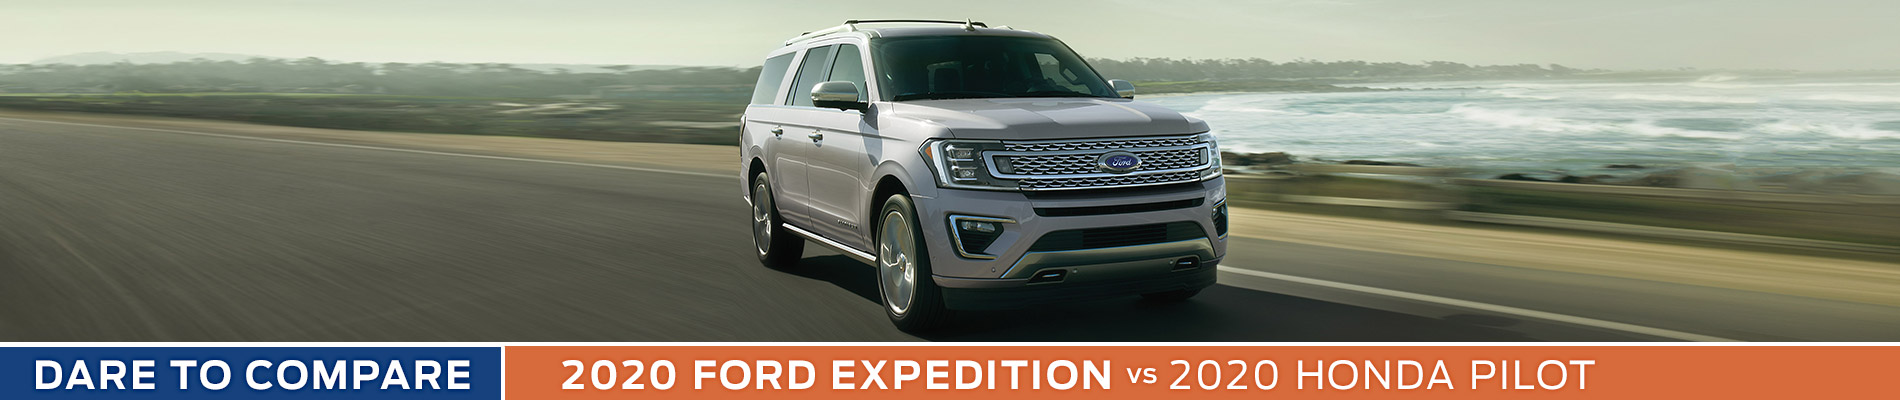 2020 Ford Expedition vs Honda Pilot - Sun State Ford - Orlando, FL